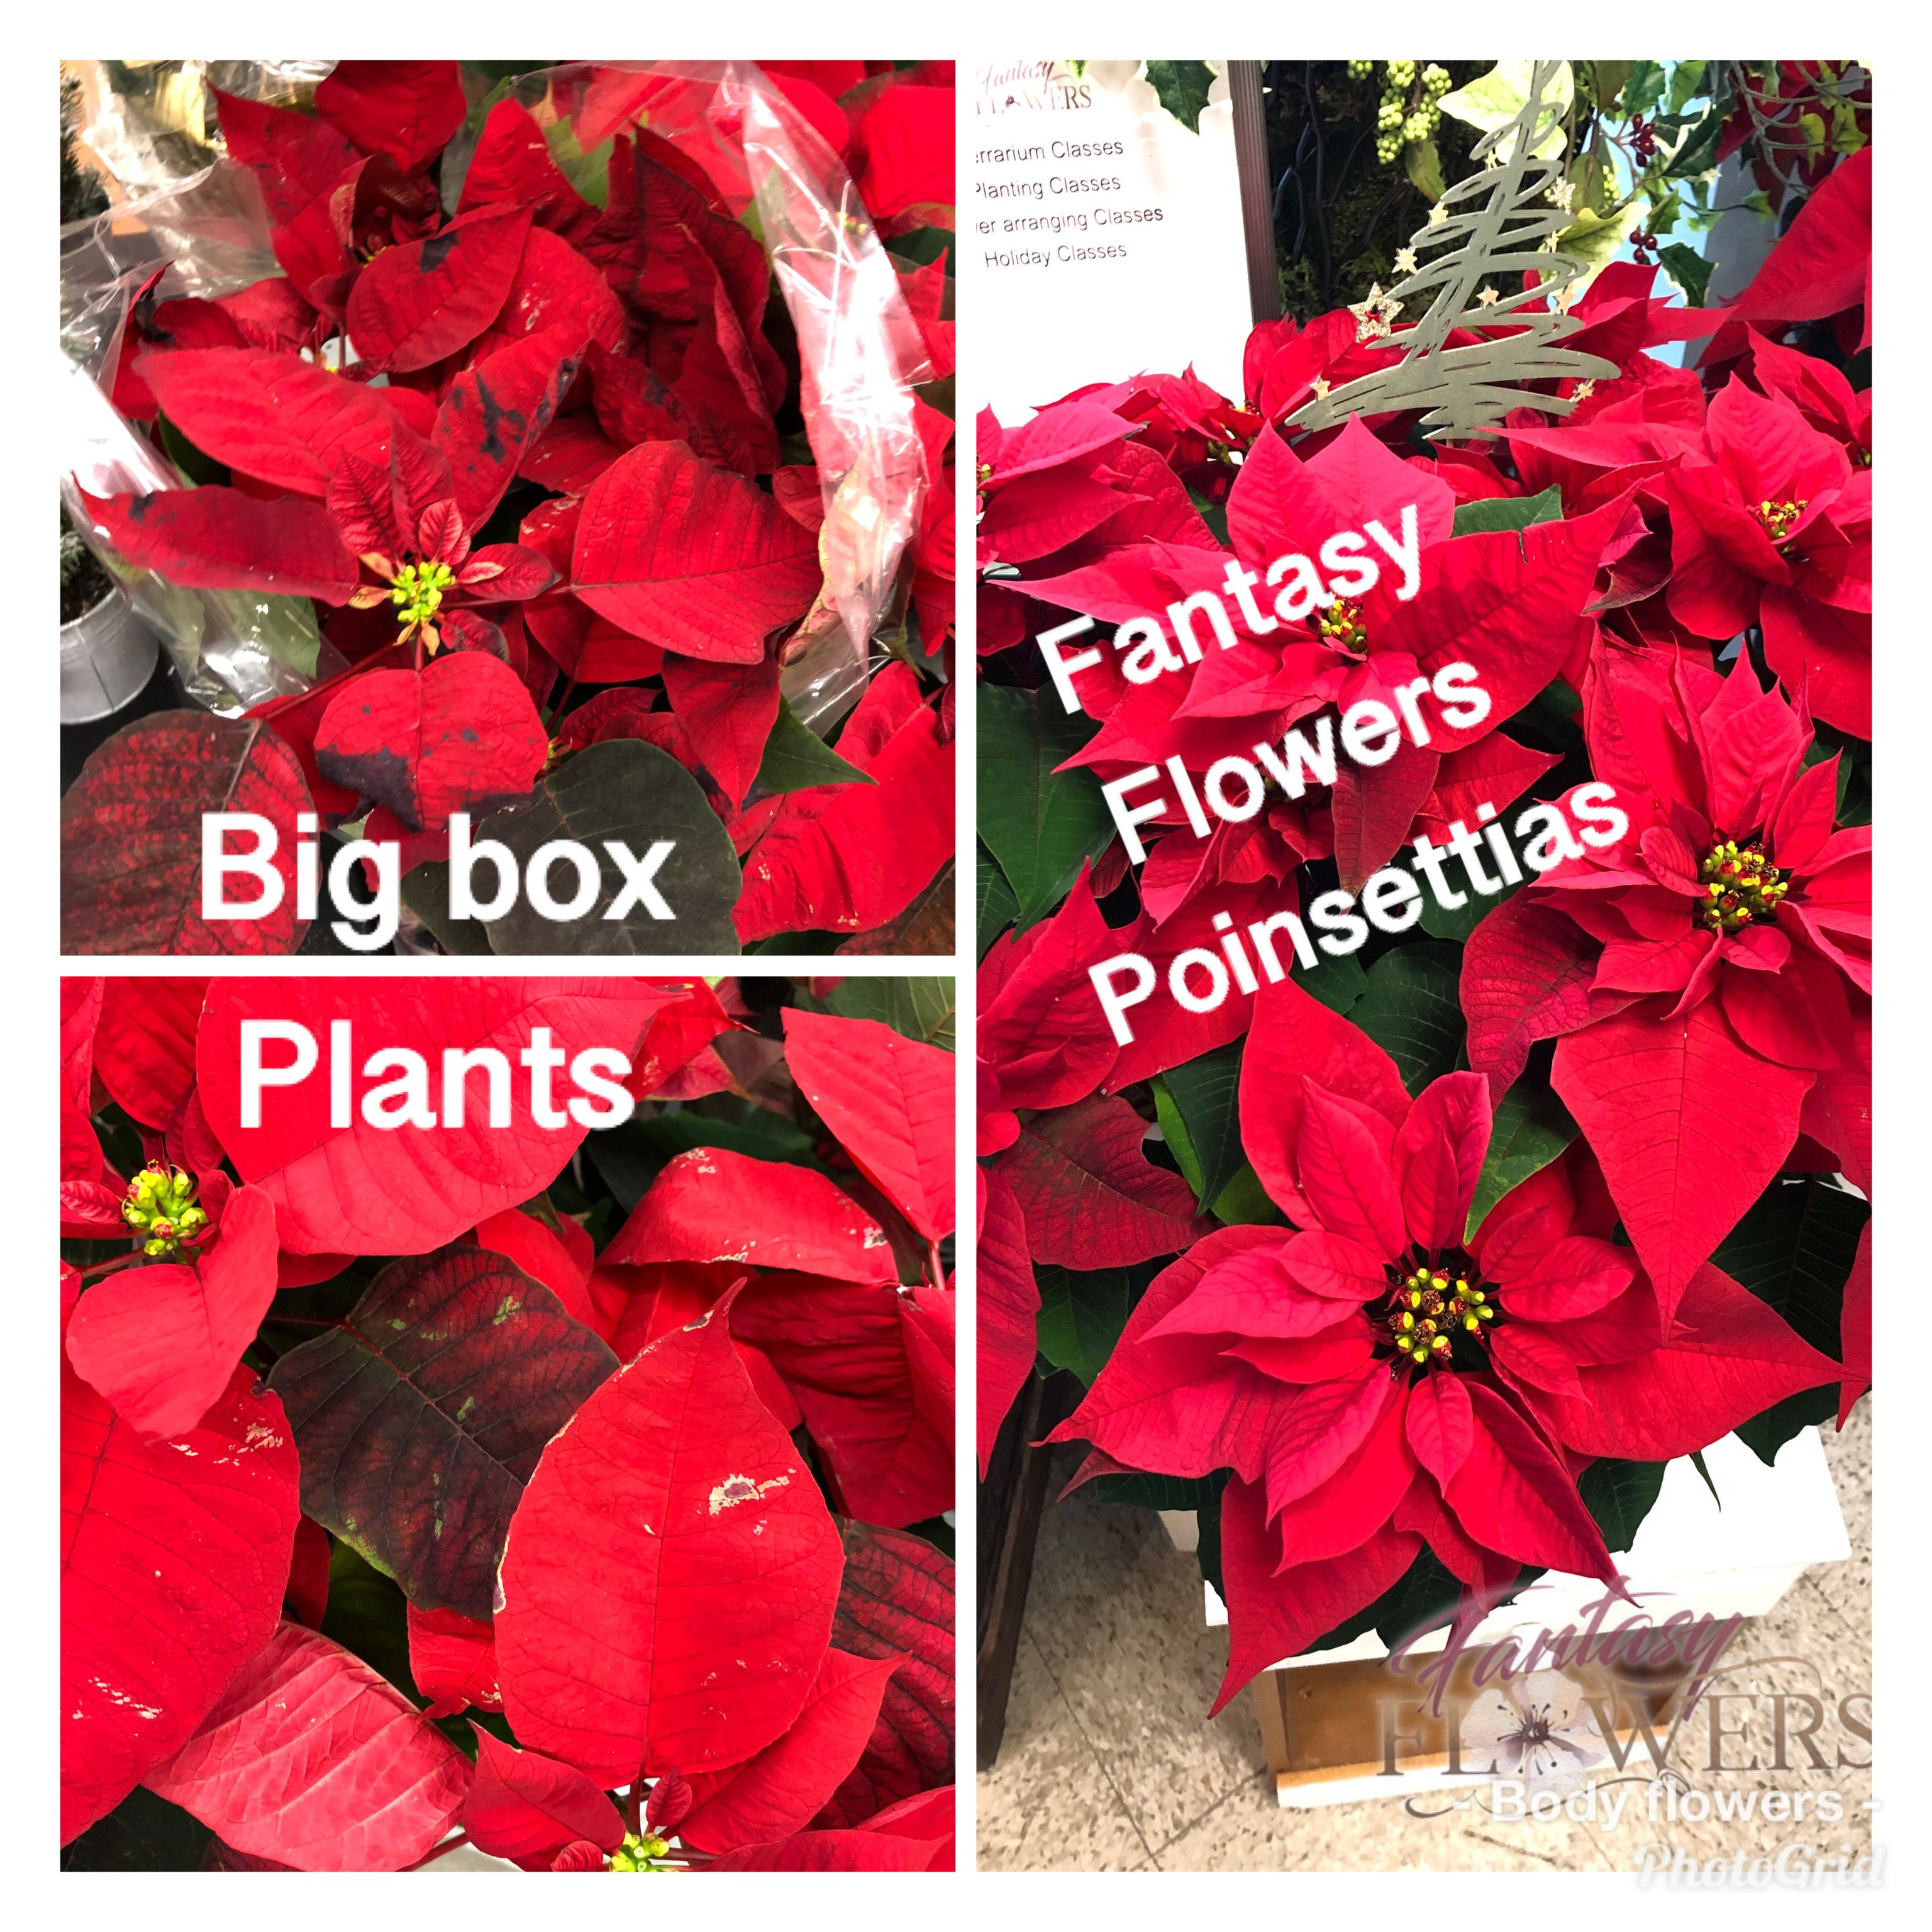 Are You Suffering From Big Box Coma I See People Mindless Pushing Carts Up And Down Aisles Searching For Gi Flower Delivery Fresh Flower Delivery Flower Gift